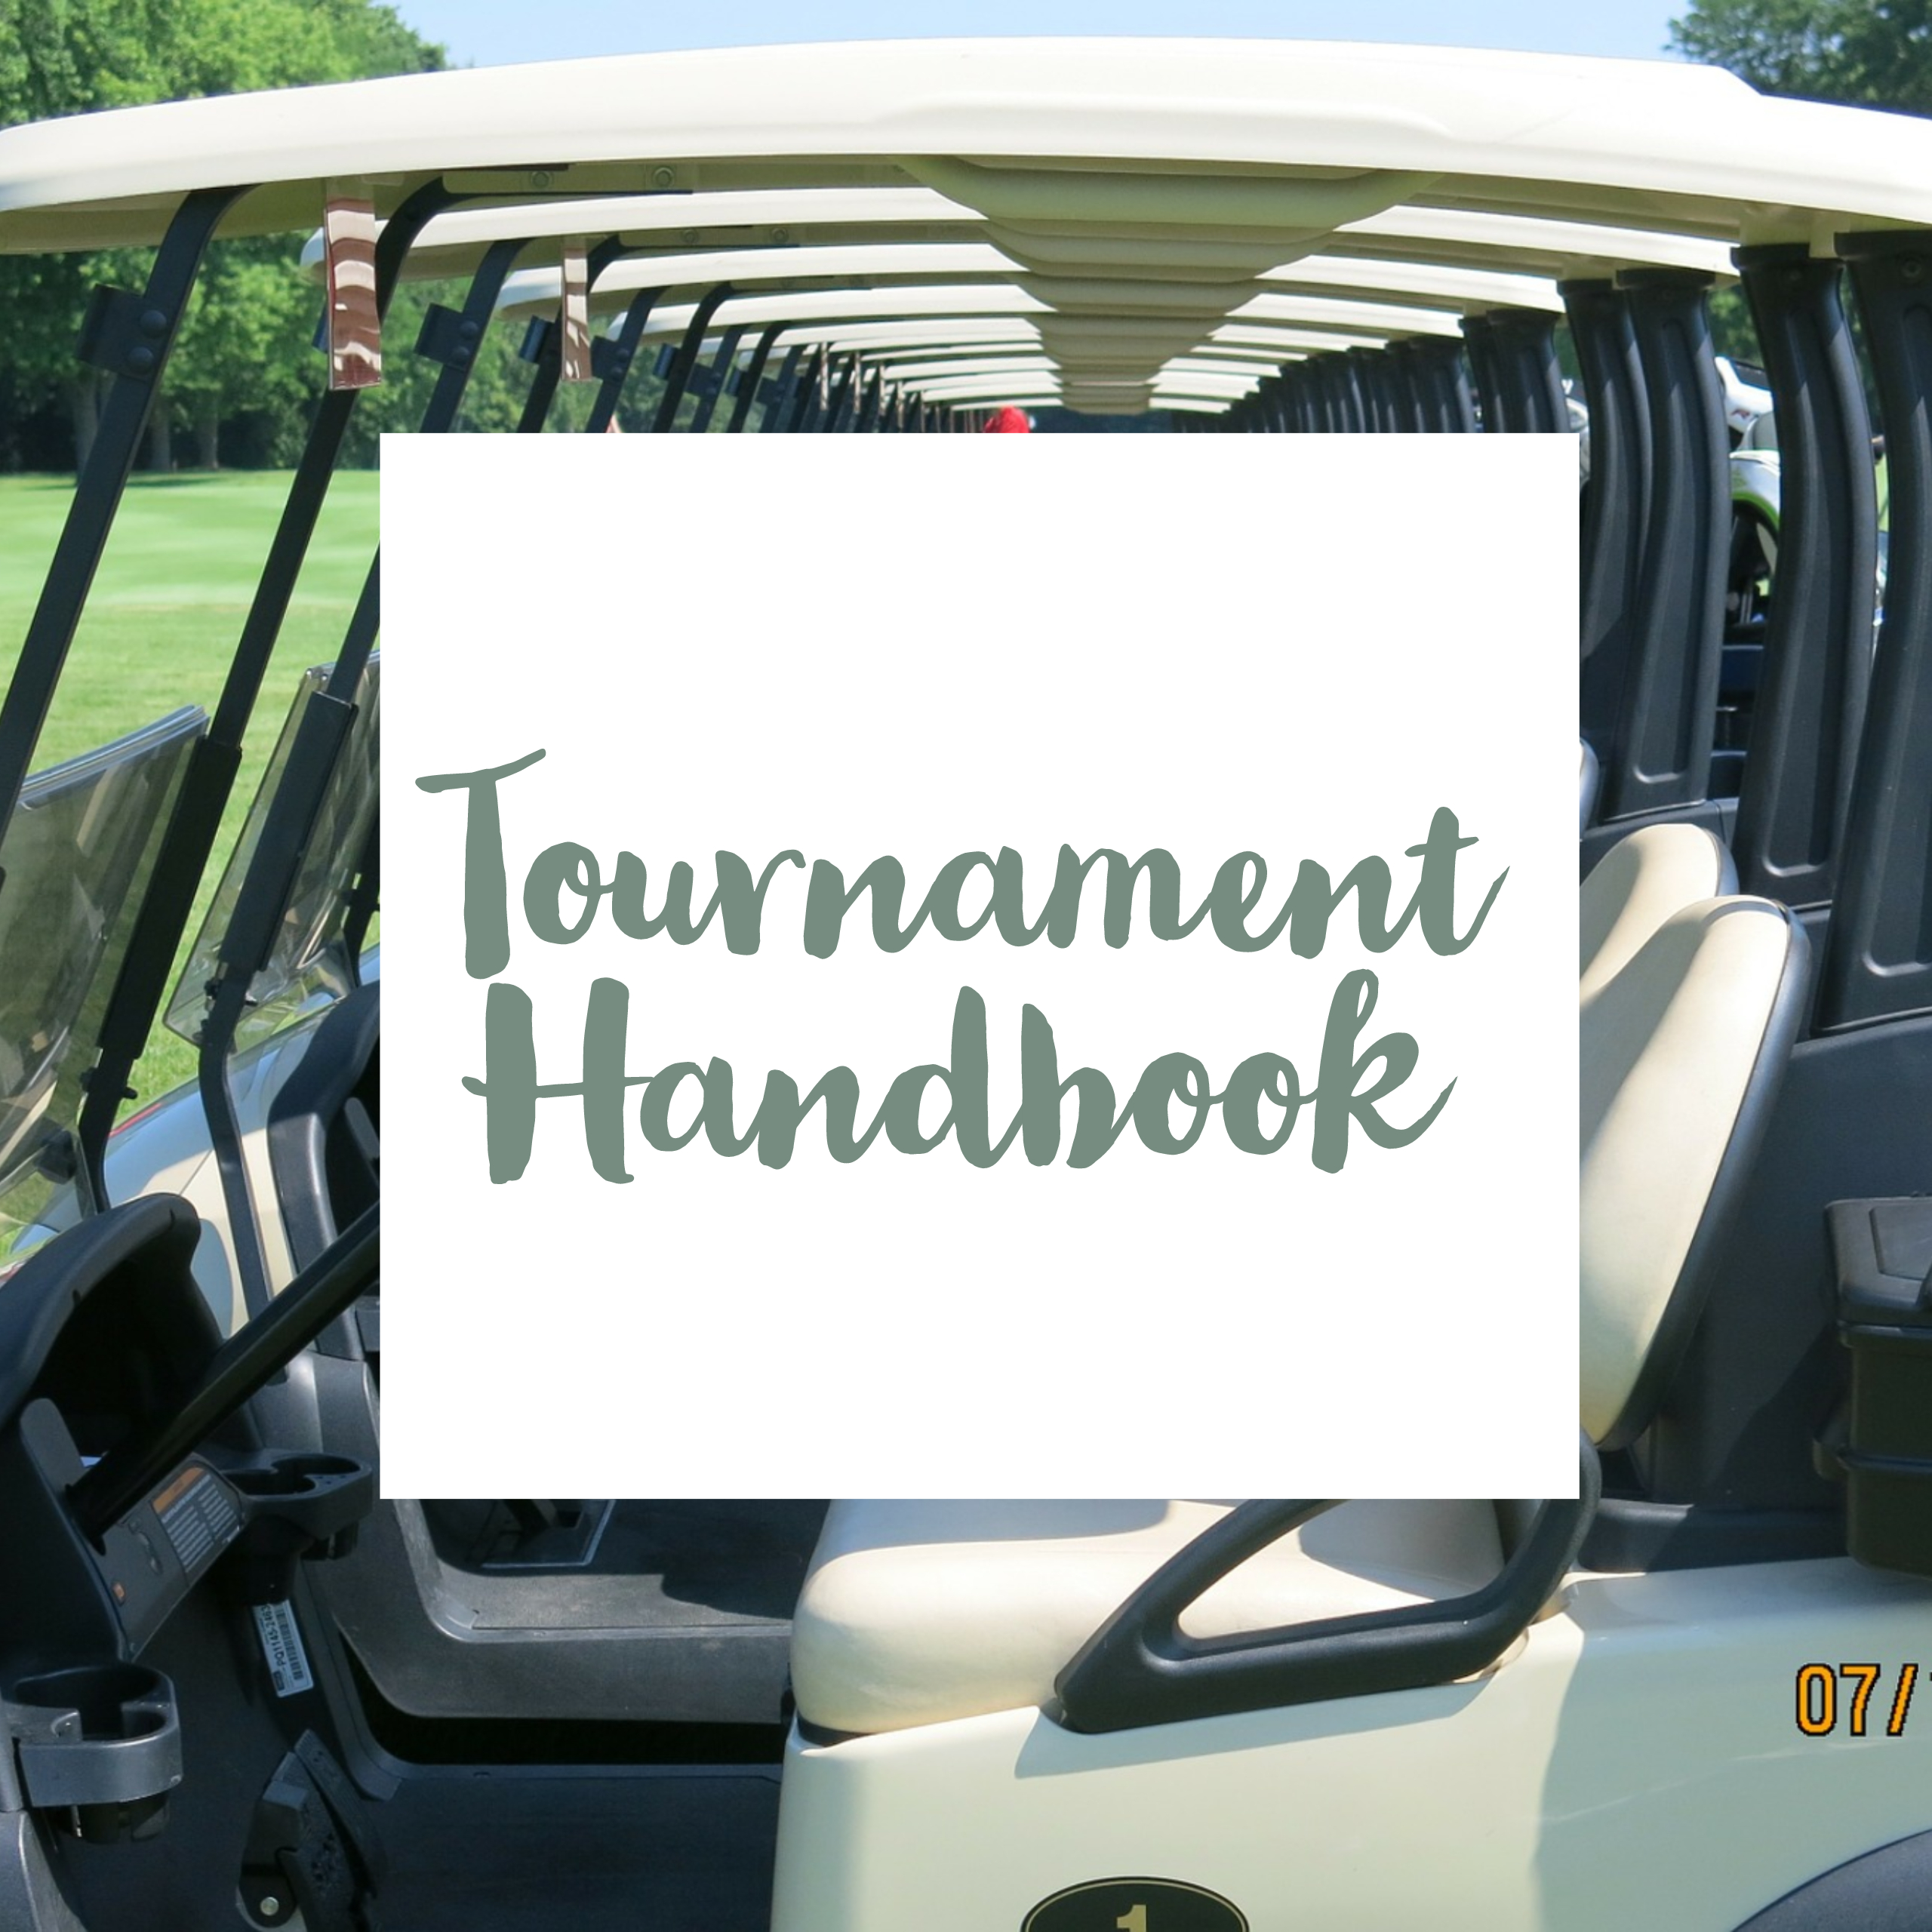 Tournament Handbook Image